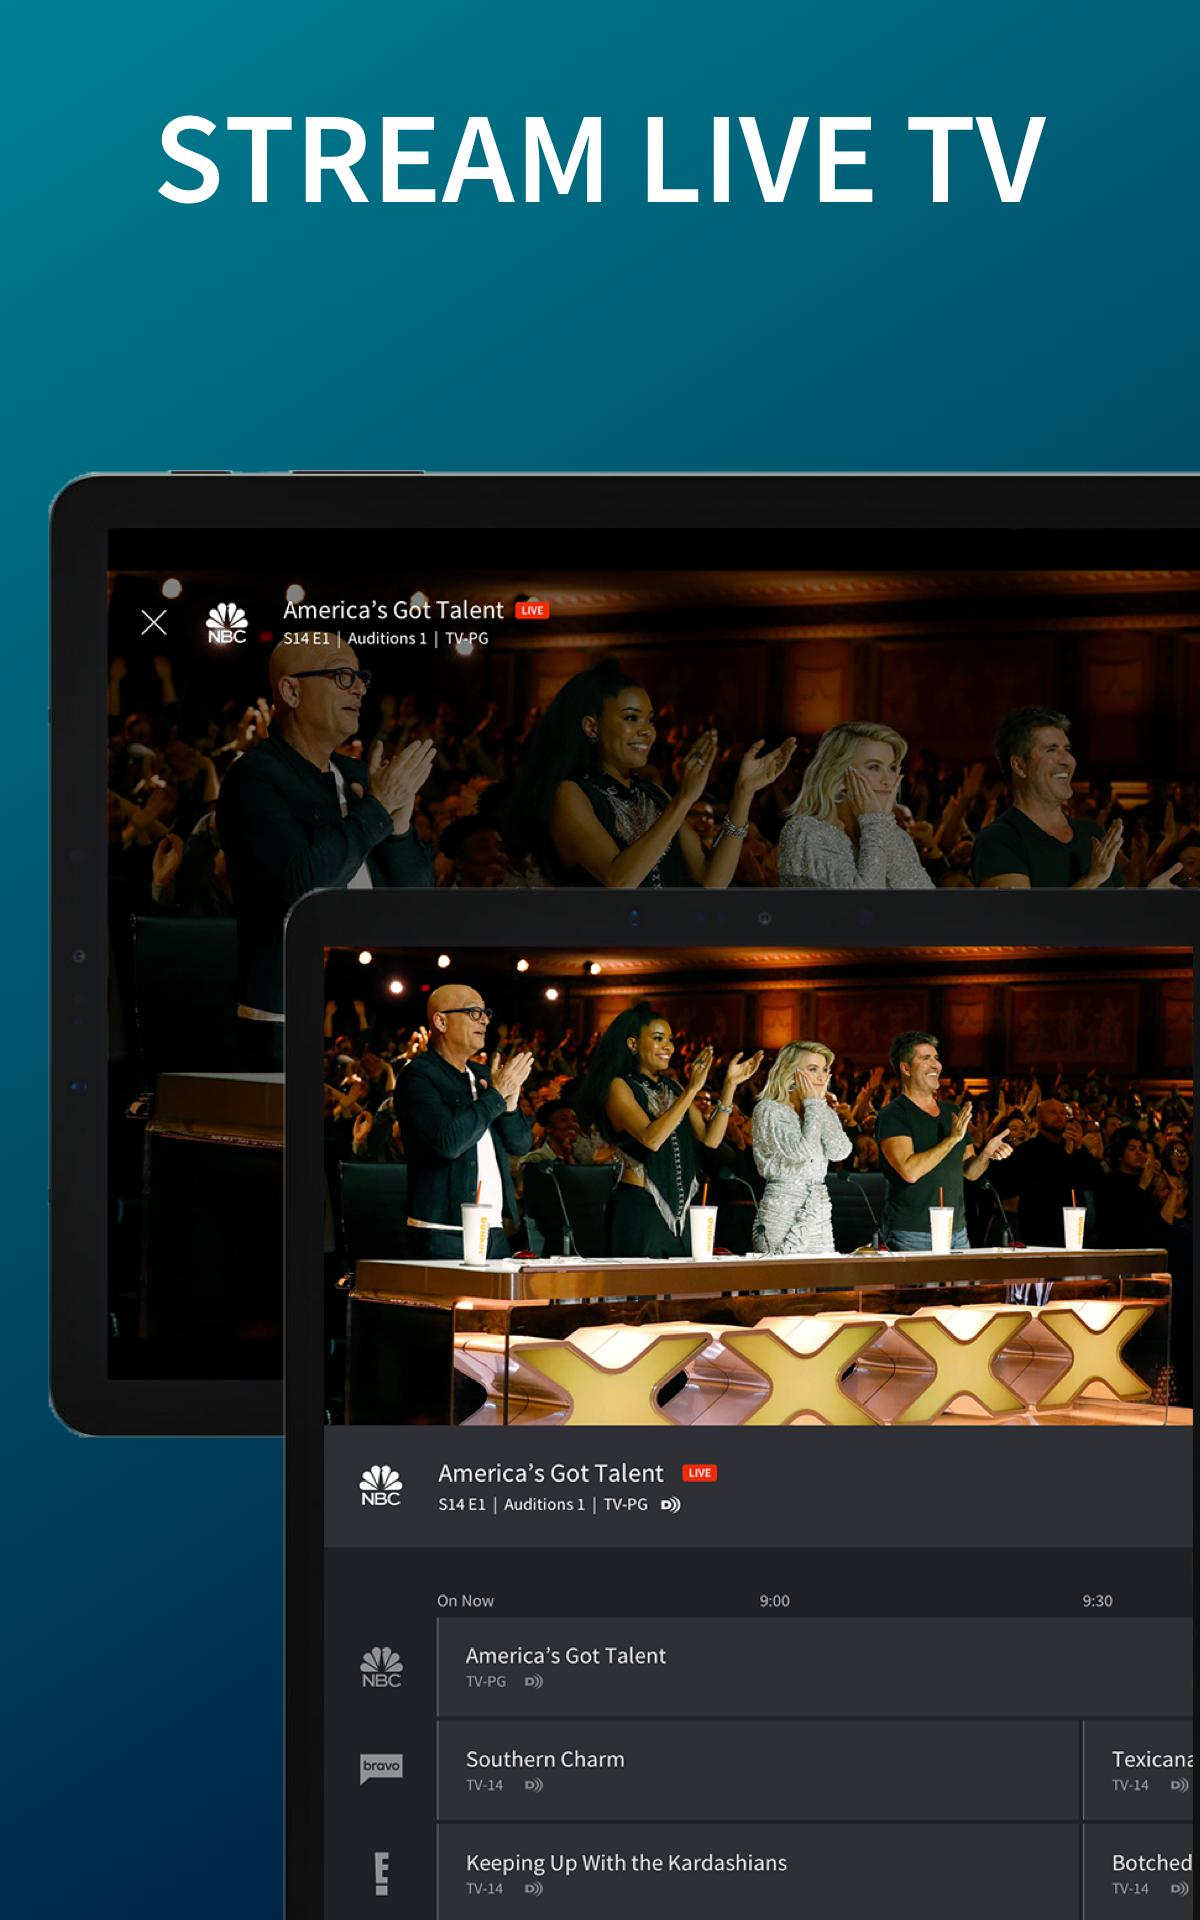 The NBC App - Stream Live TV and Episodes for Free 7.4.1 Screenshot 14